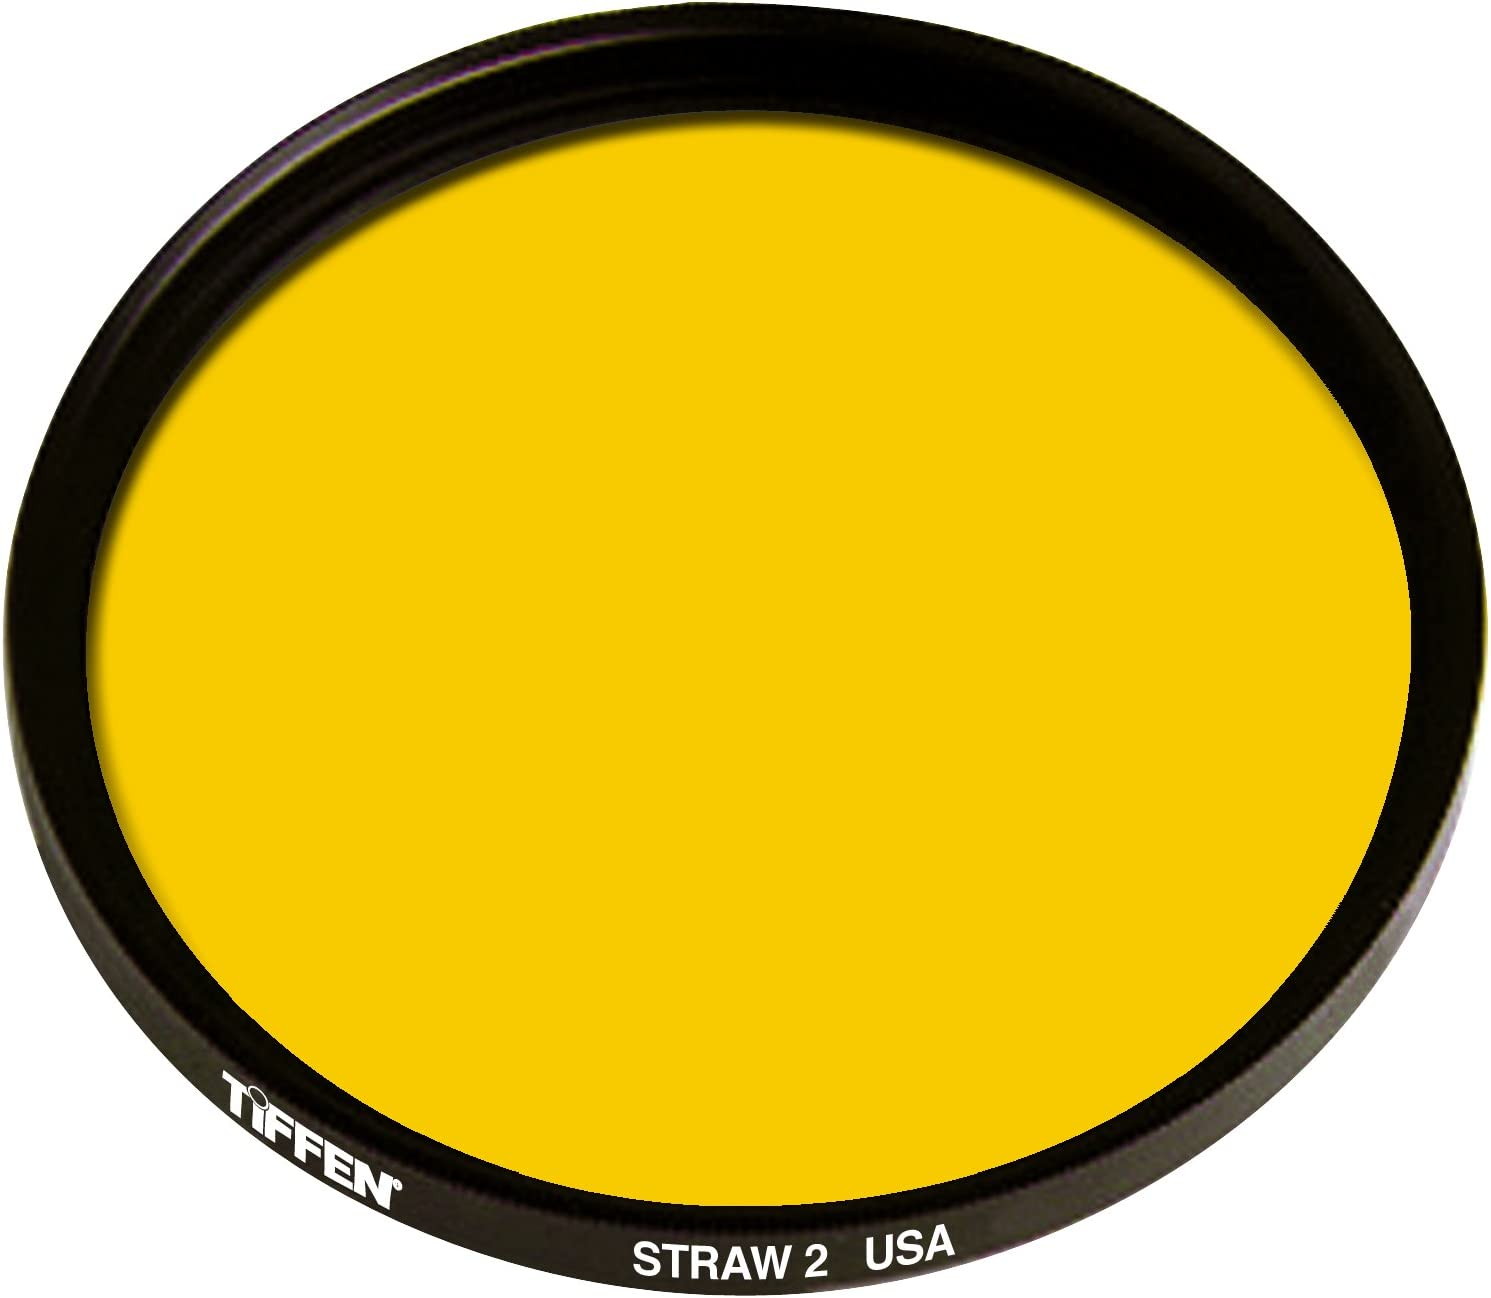 Tiffen 138mm Straw 2 Solid Color Filter